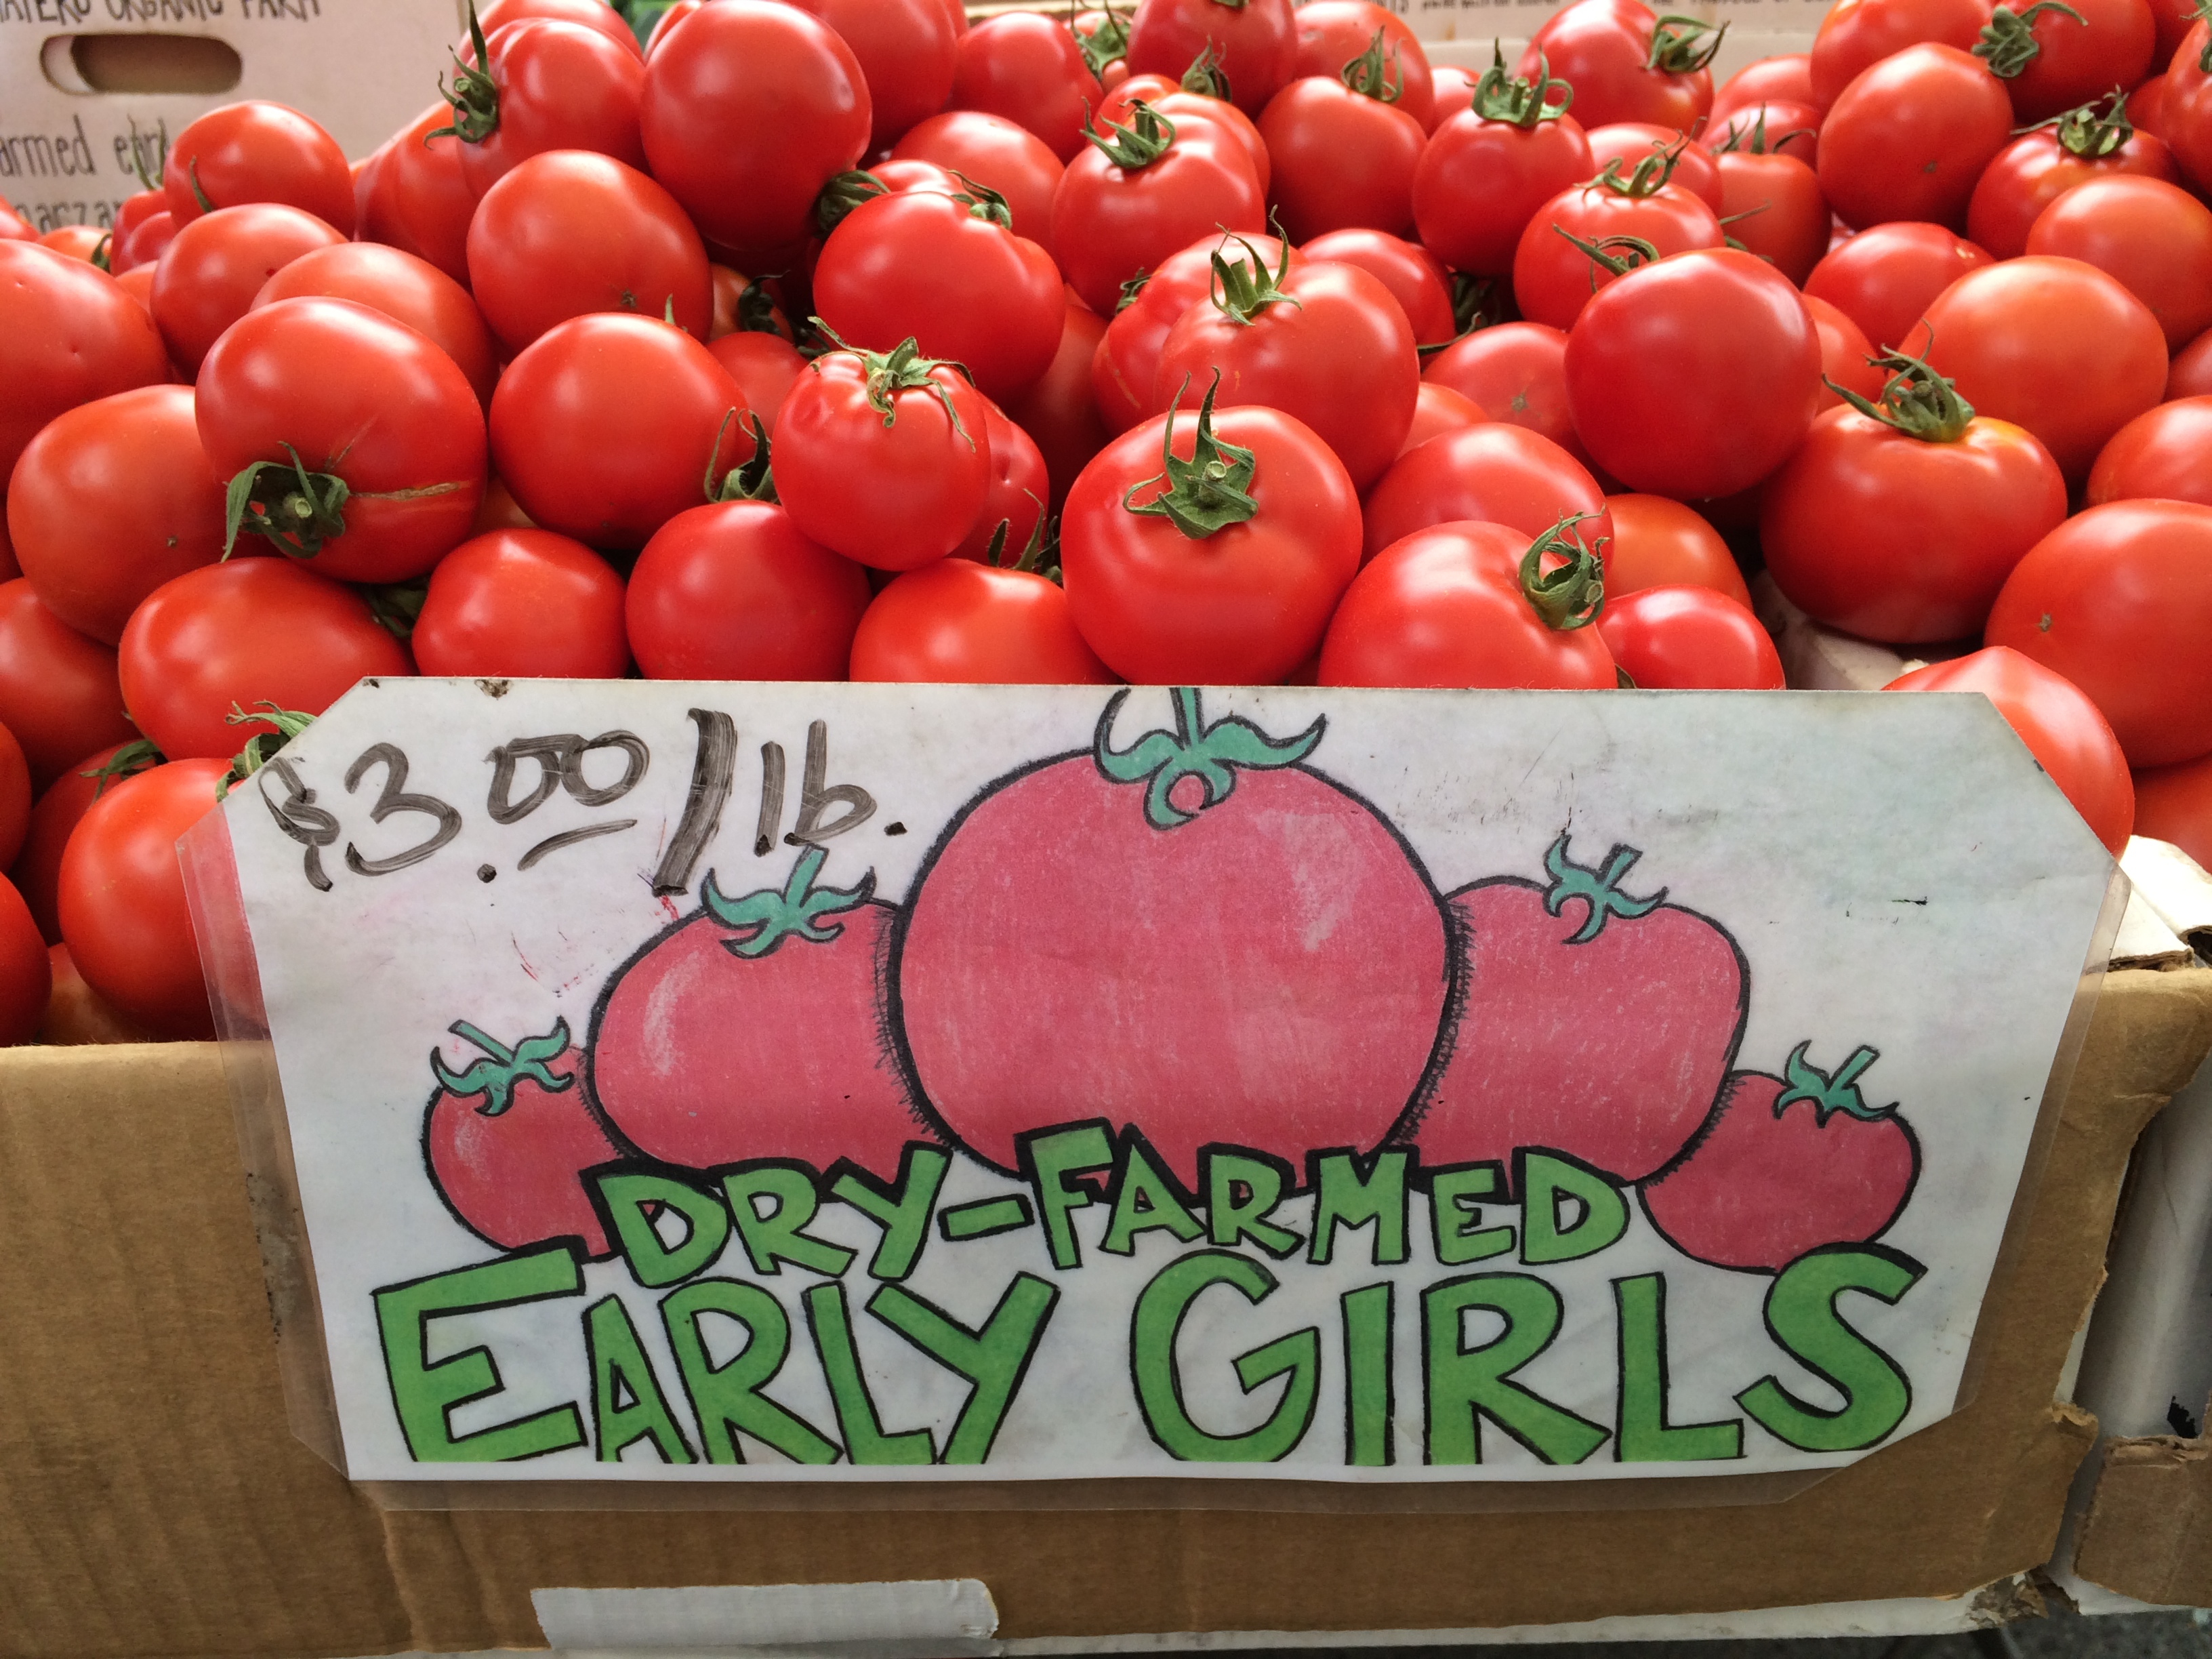 Early Girl Tomato Time